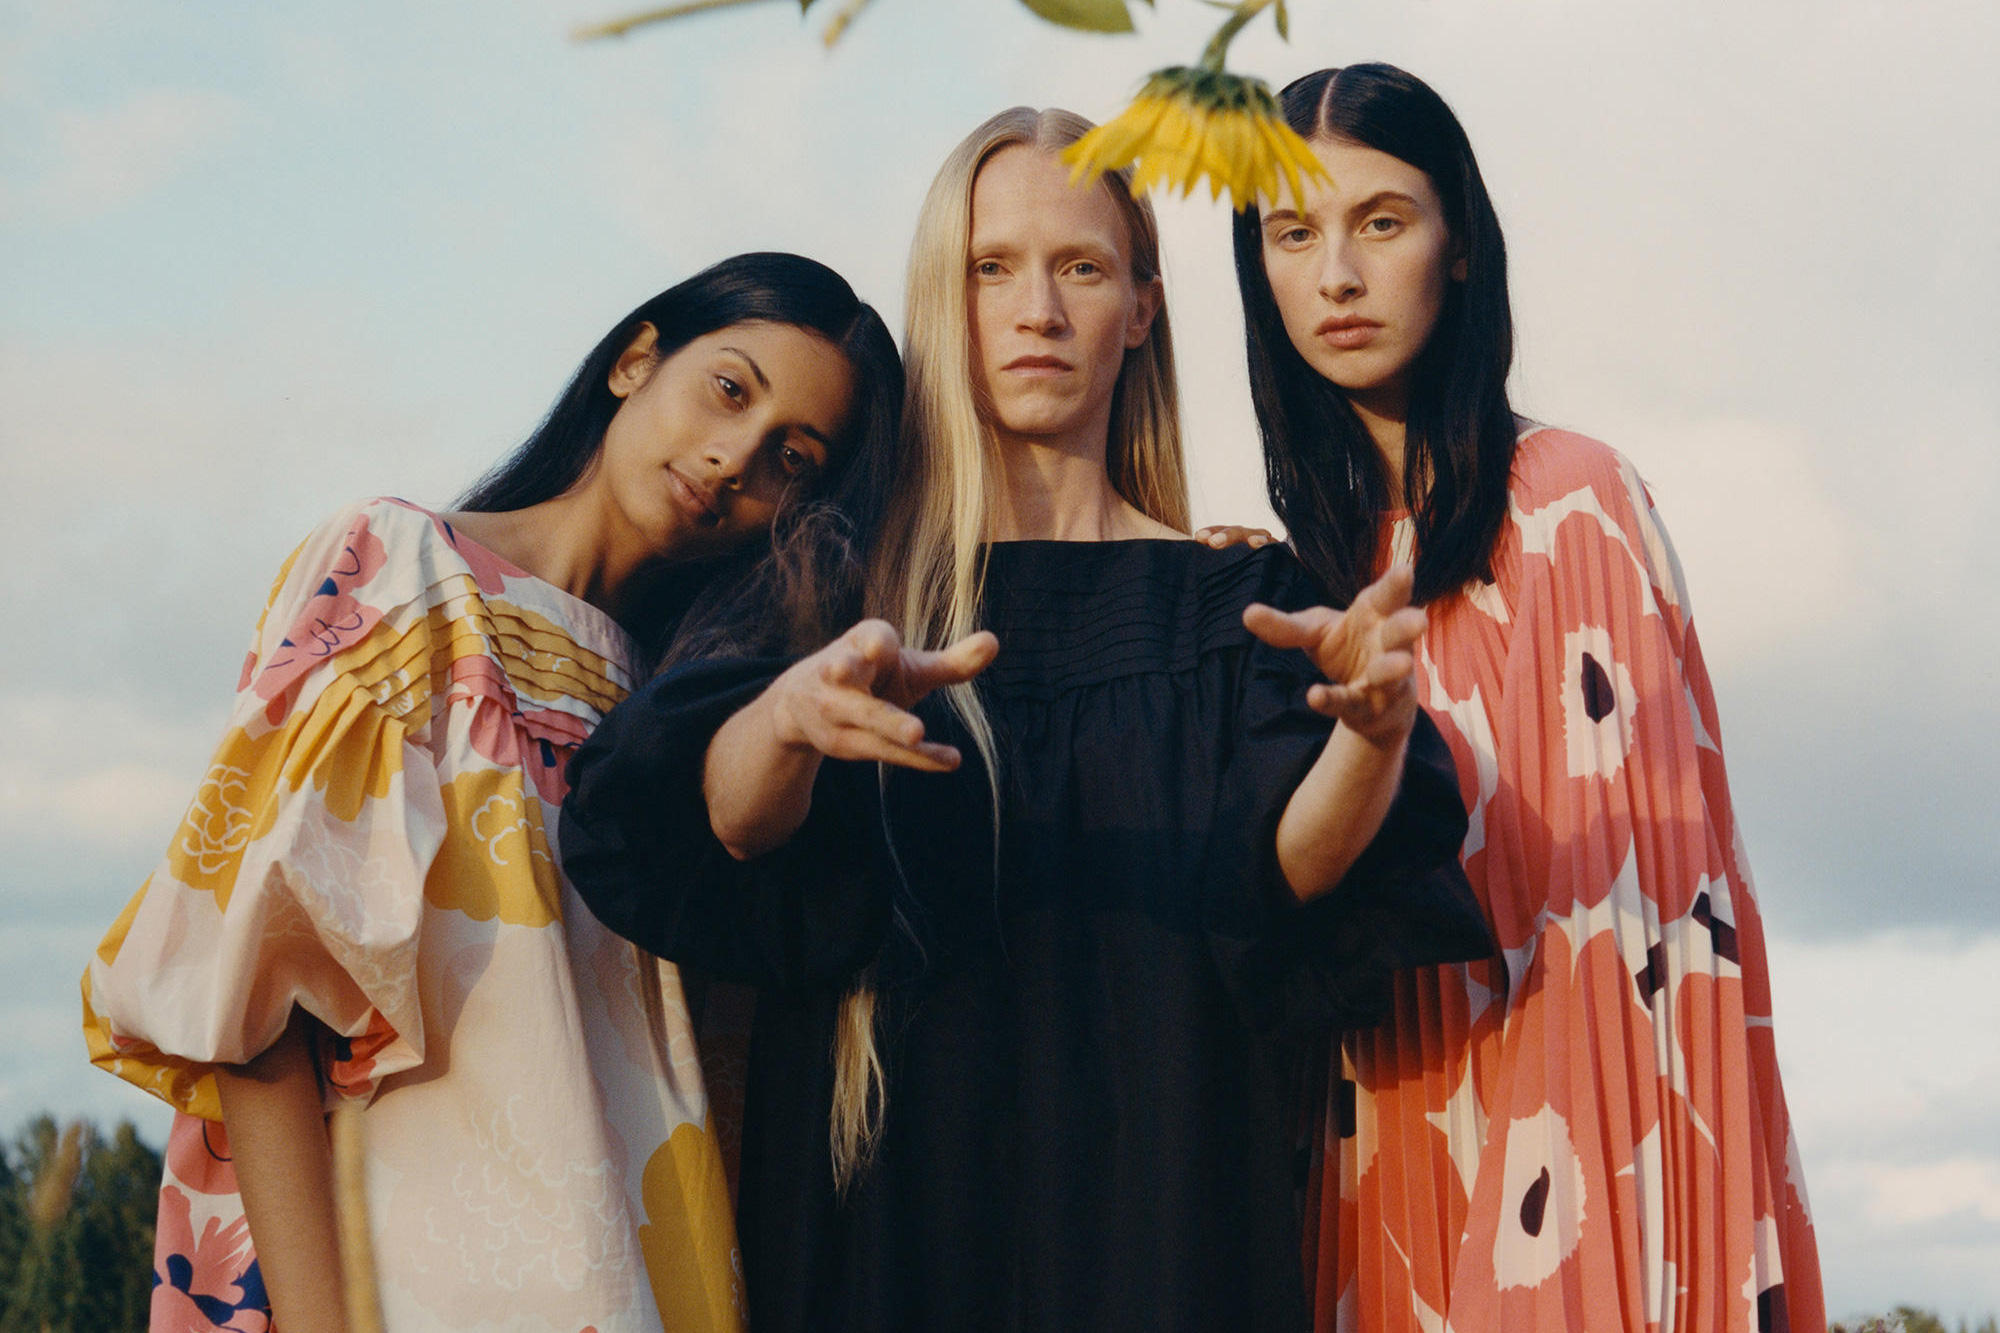 3.20- Spring/Summer 2020 Ready-to-Wear Collection